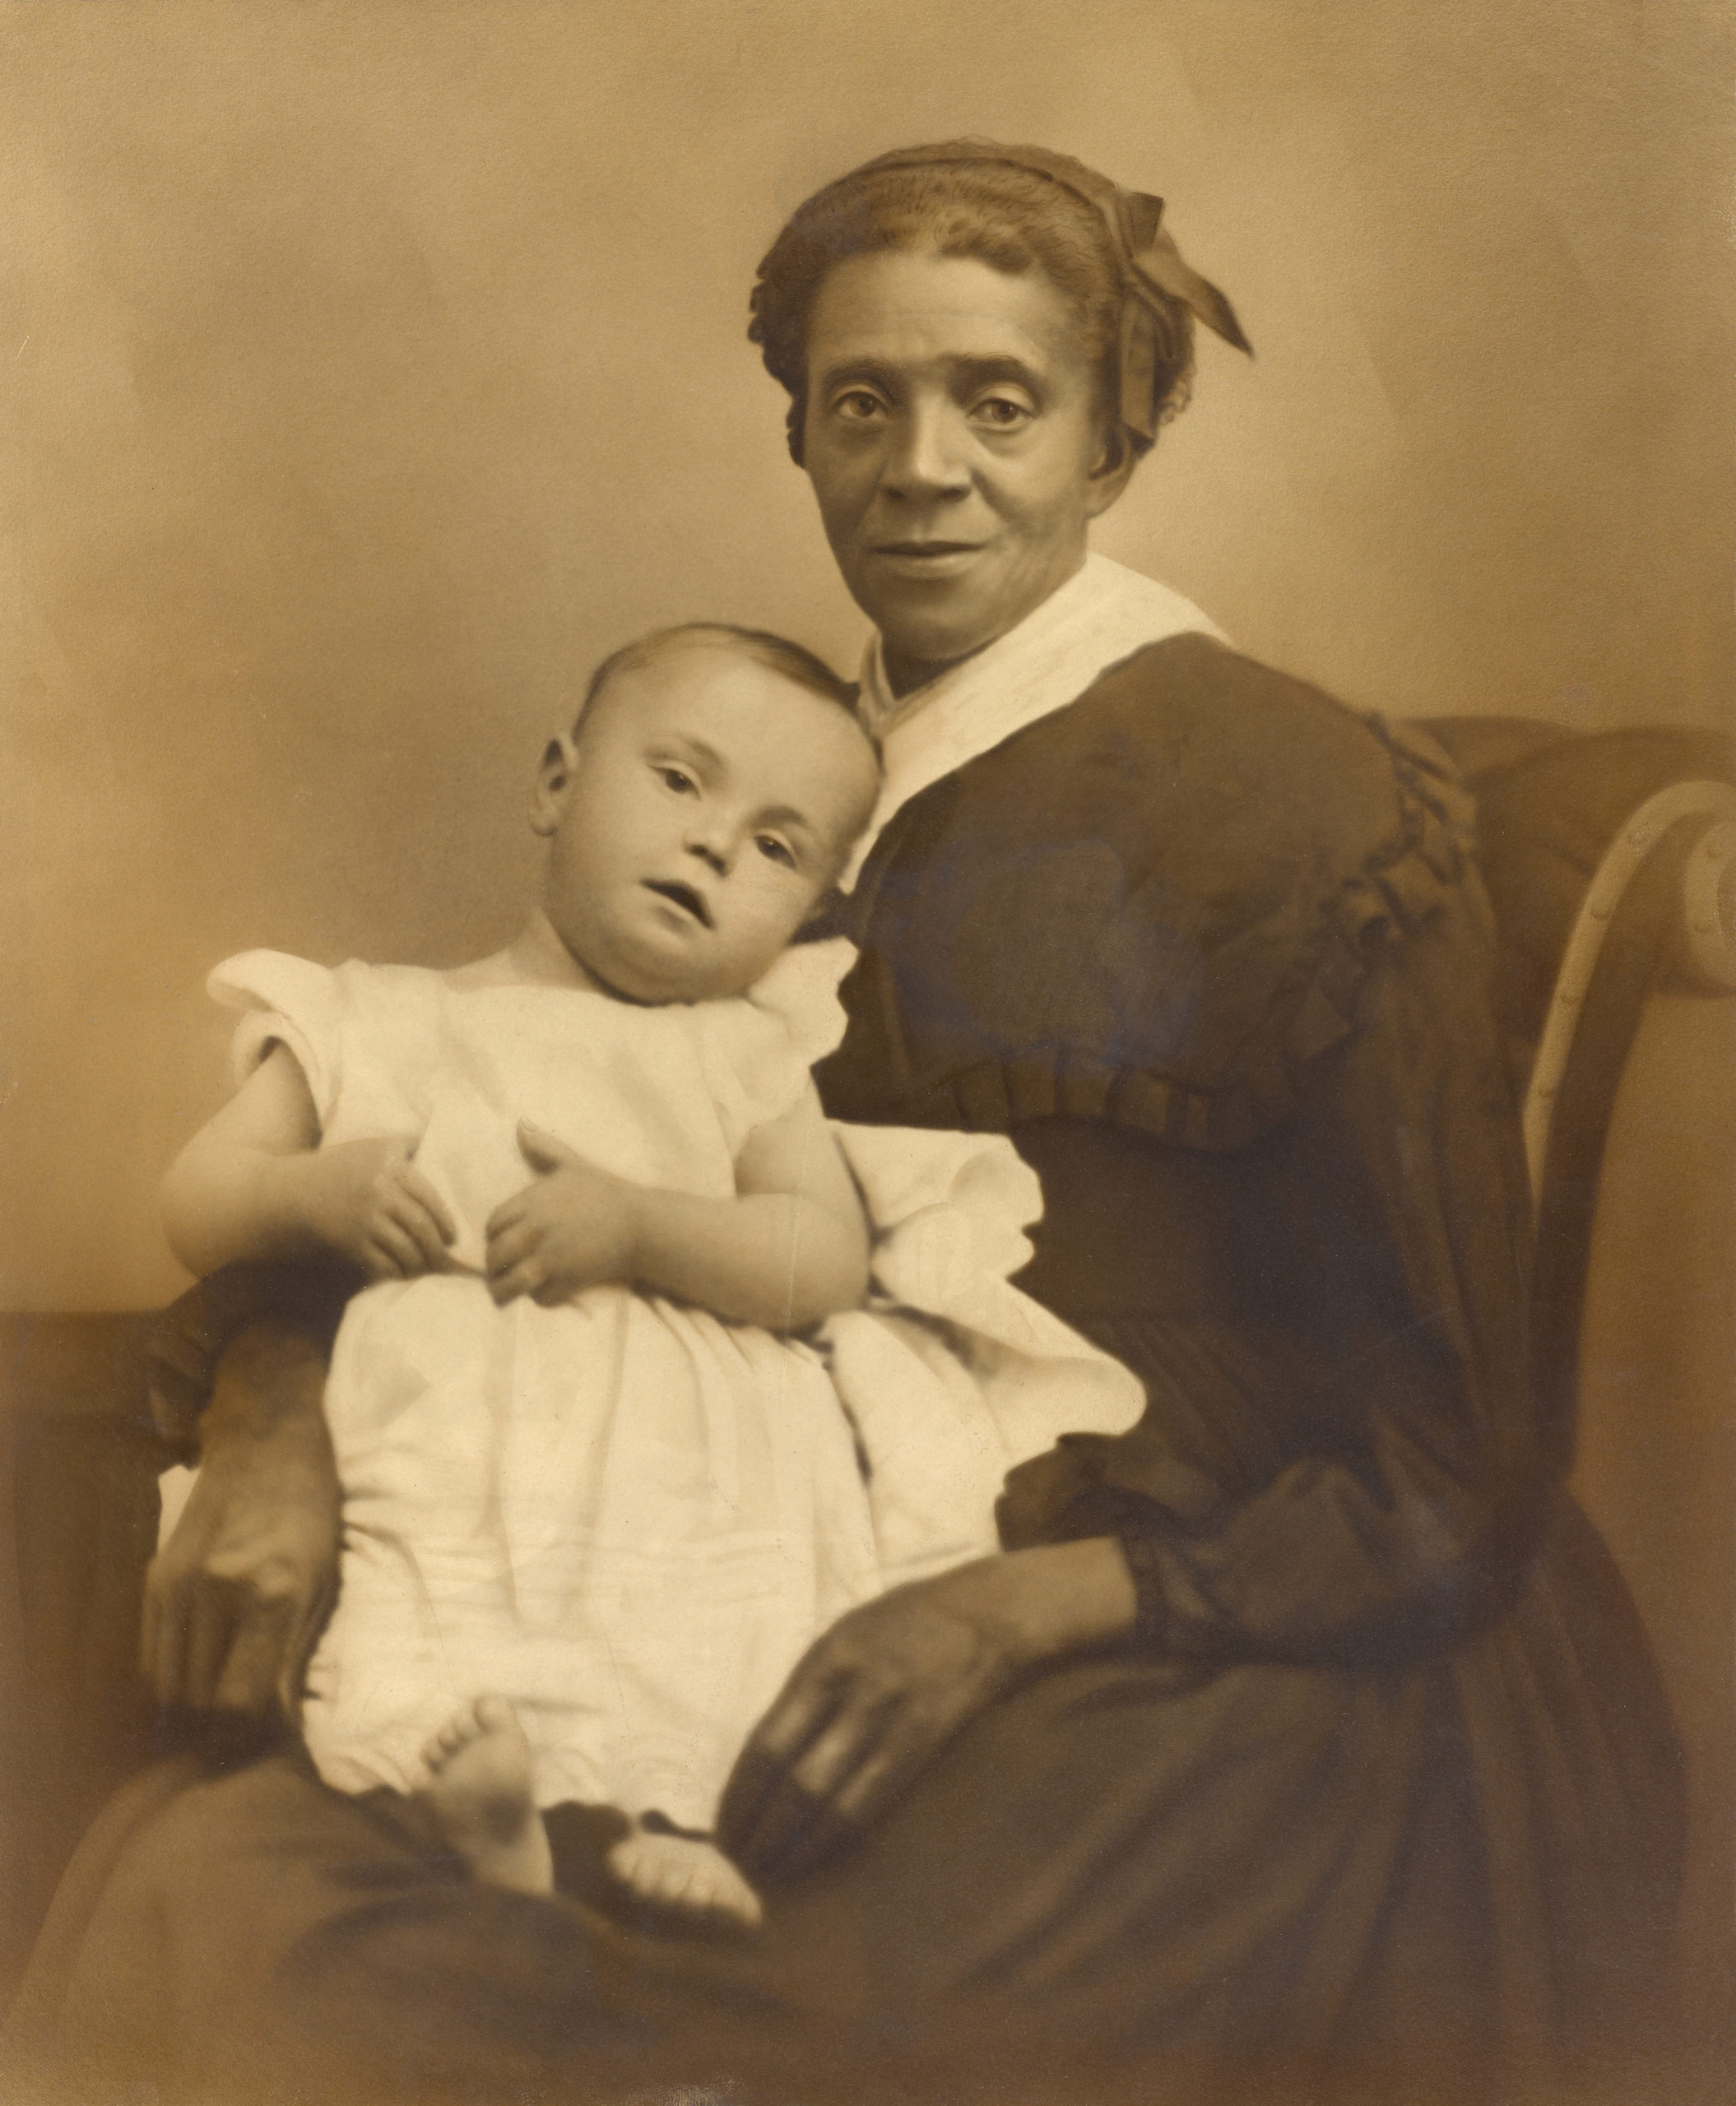 Photograph of child with light skin tone being held by women with medium-dark skin tone.